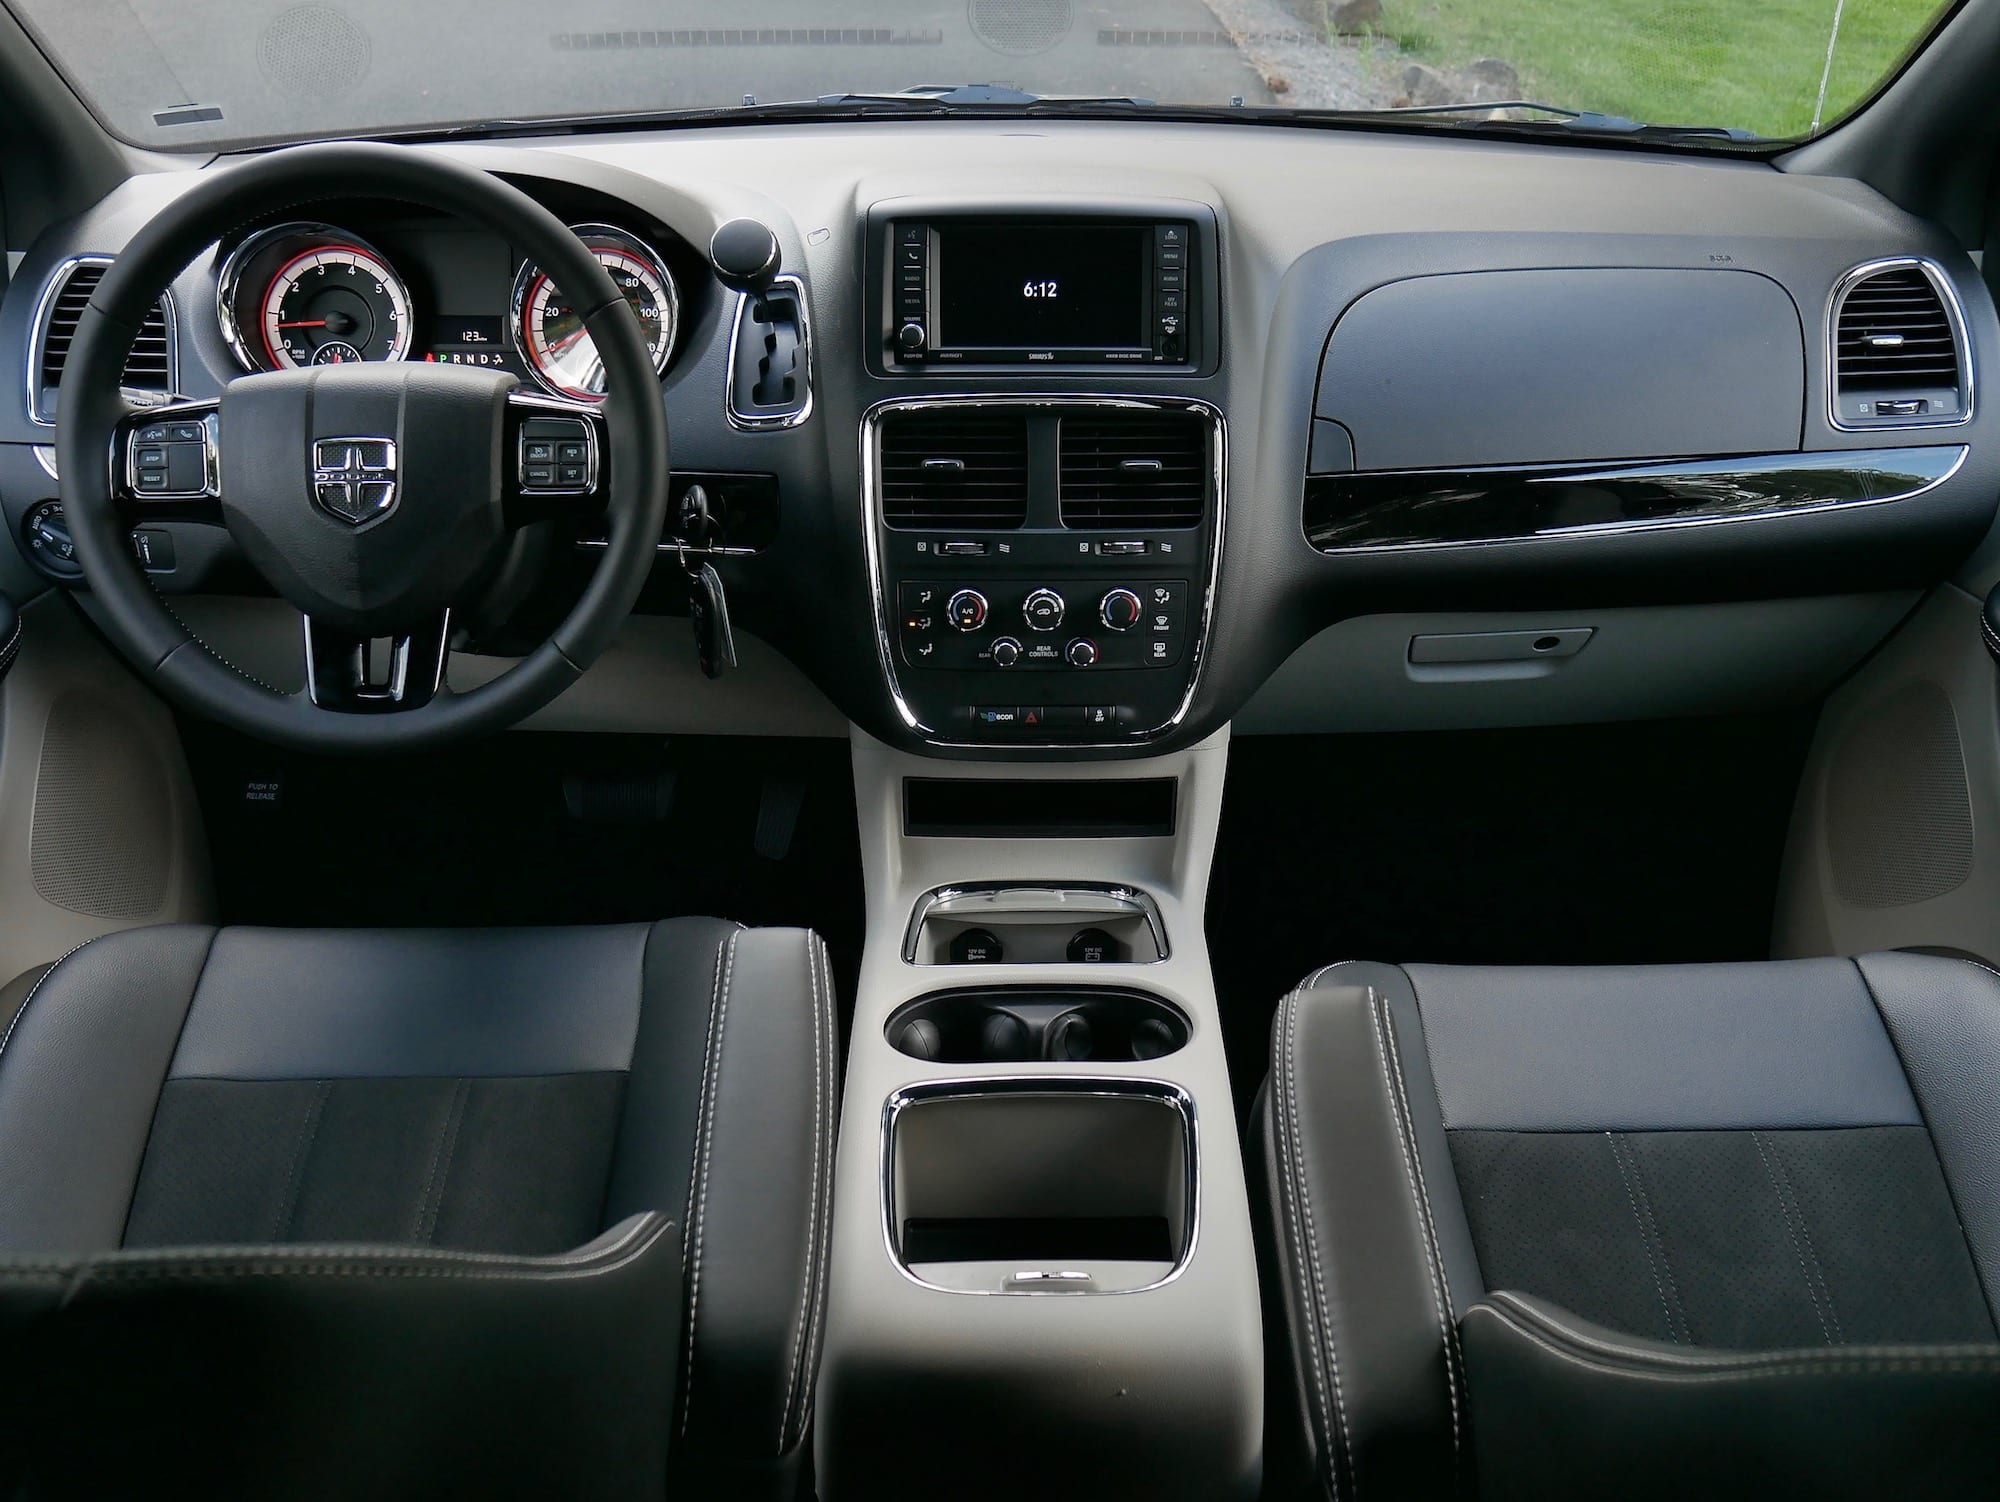 2019 Dodge Grand Caravan Sxt Review Gcbc